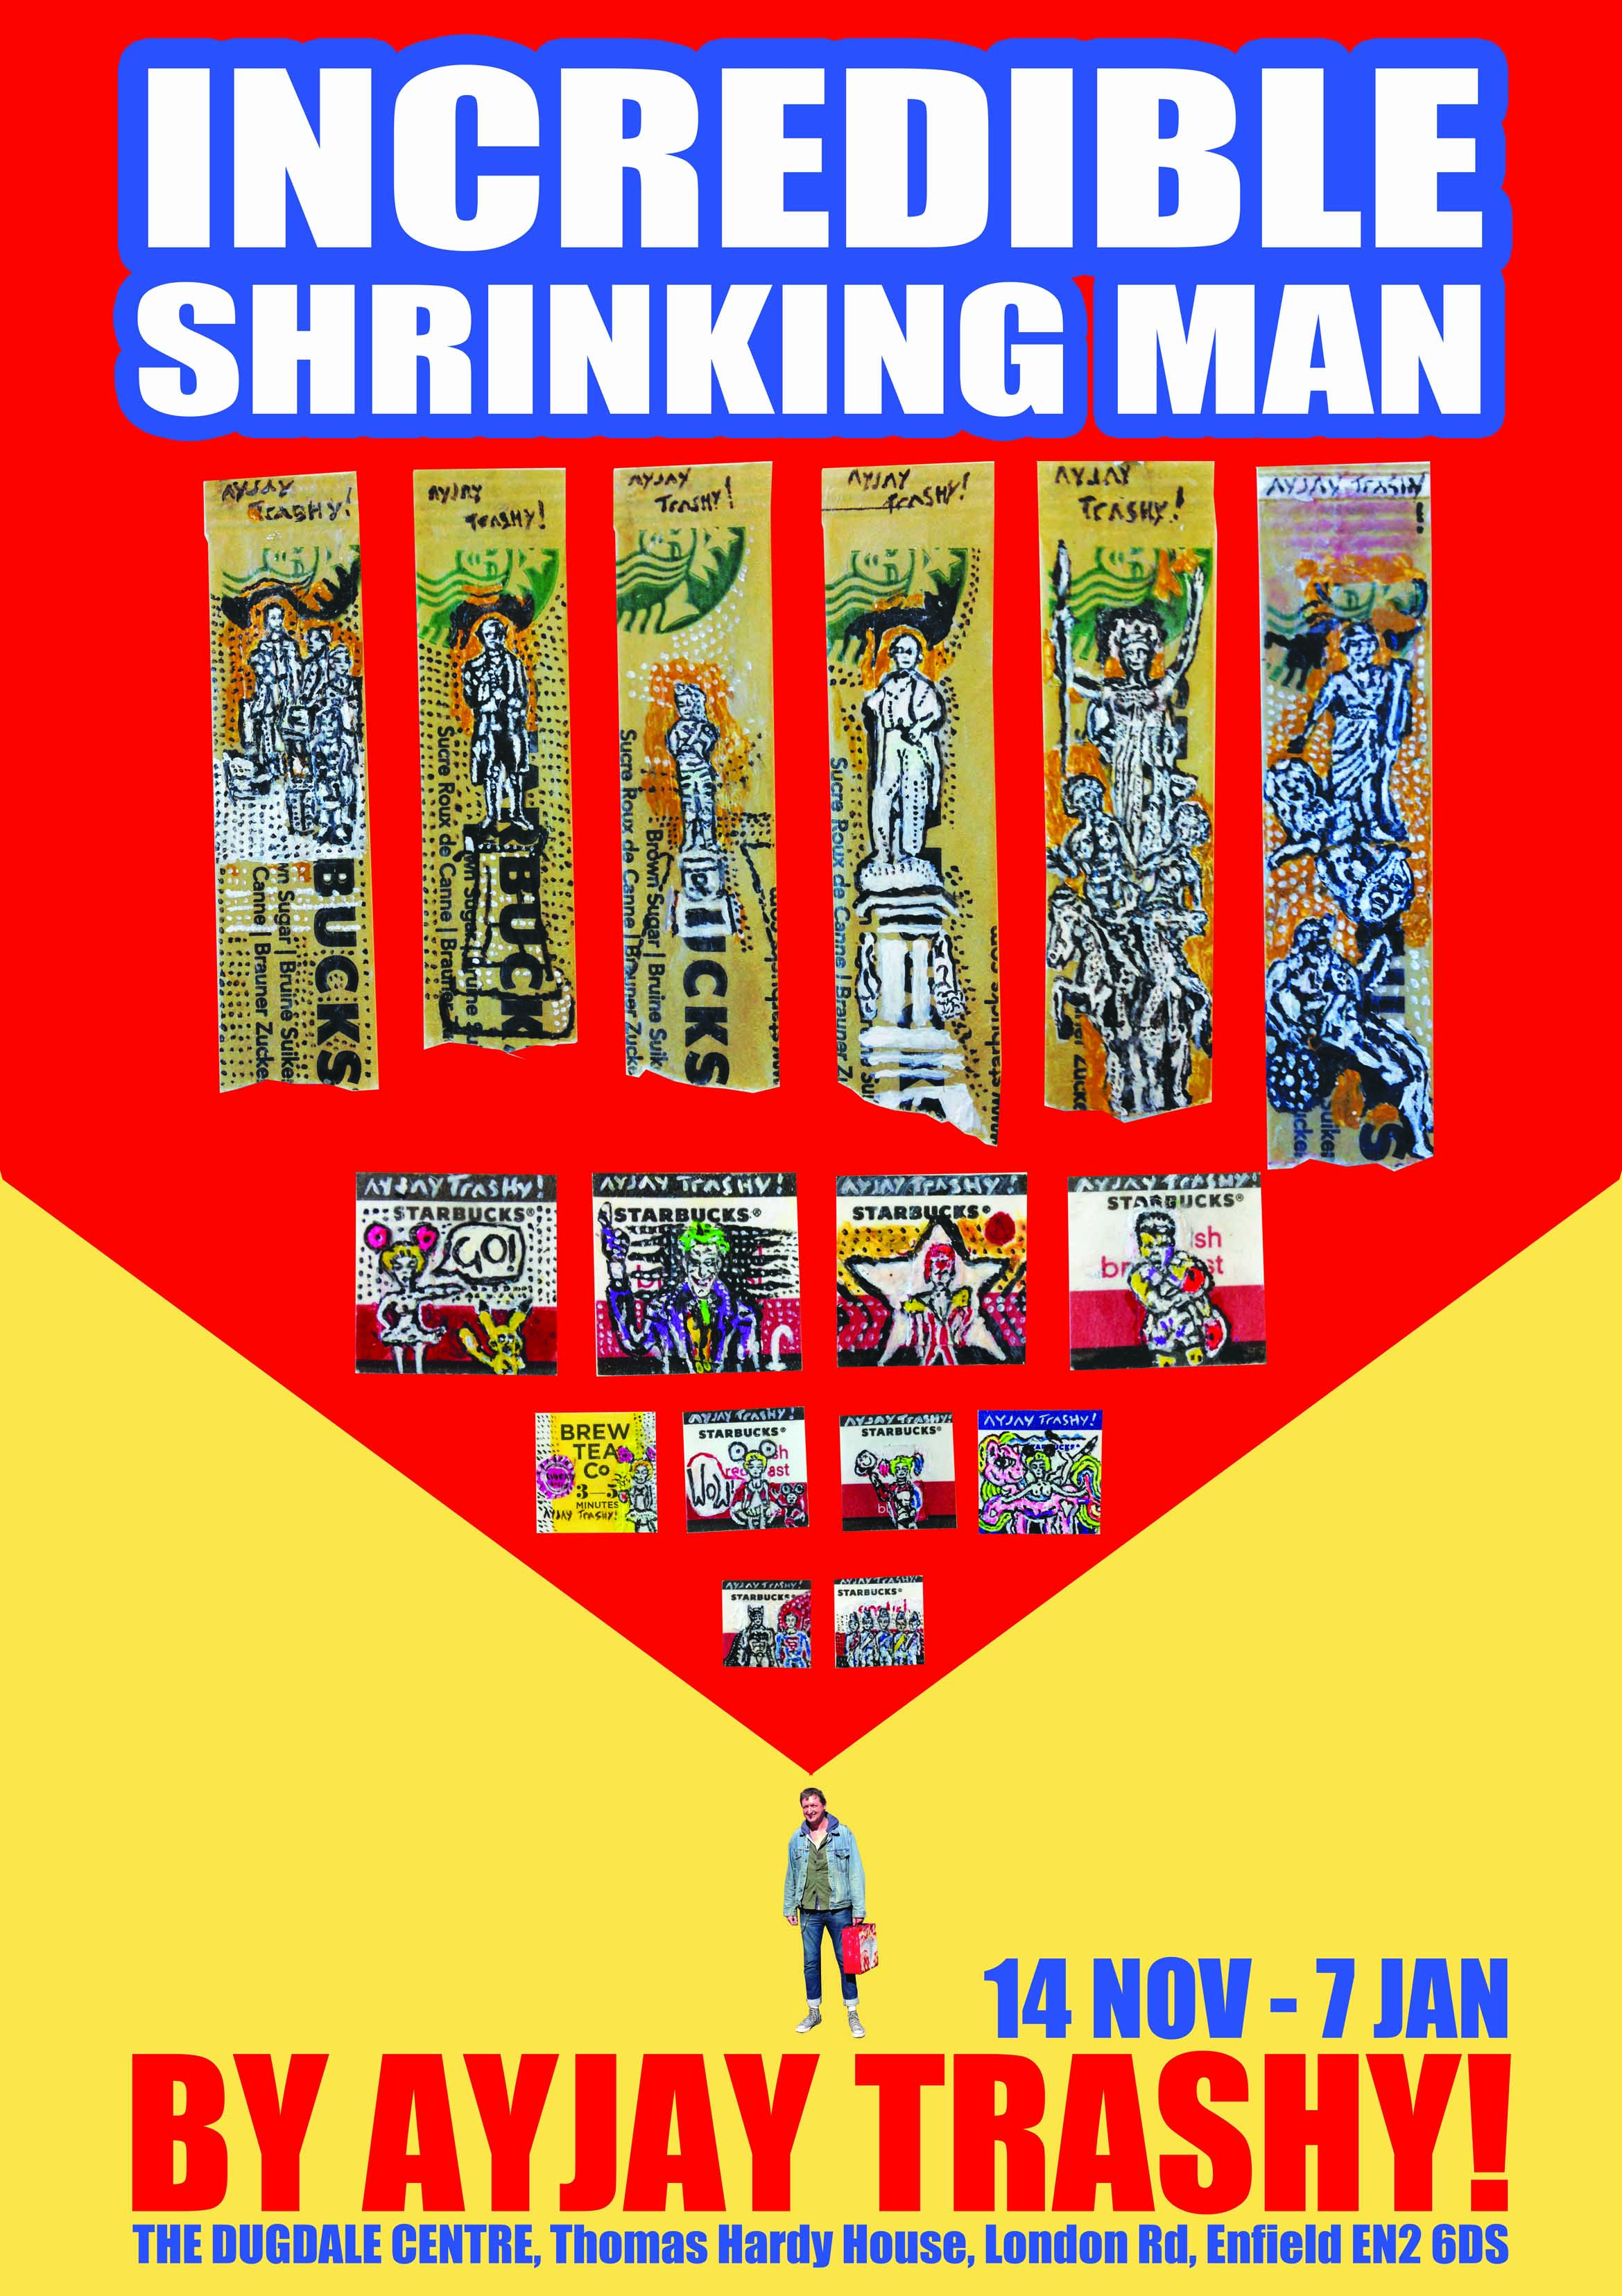 http://www.highlivingbarnet.com/wp-content/uploads/2016/11/AyJayTrashy-Poster.jpg Incredible Shrinking Man Poster